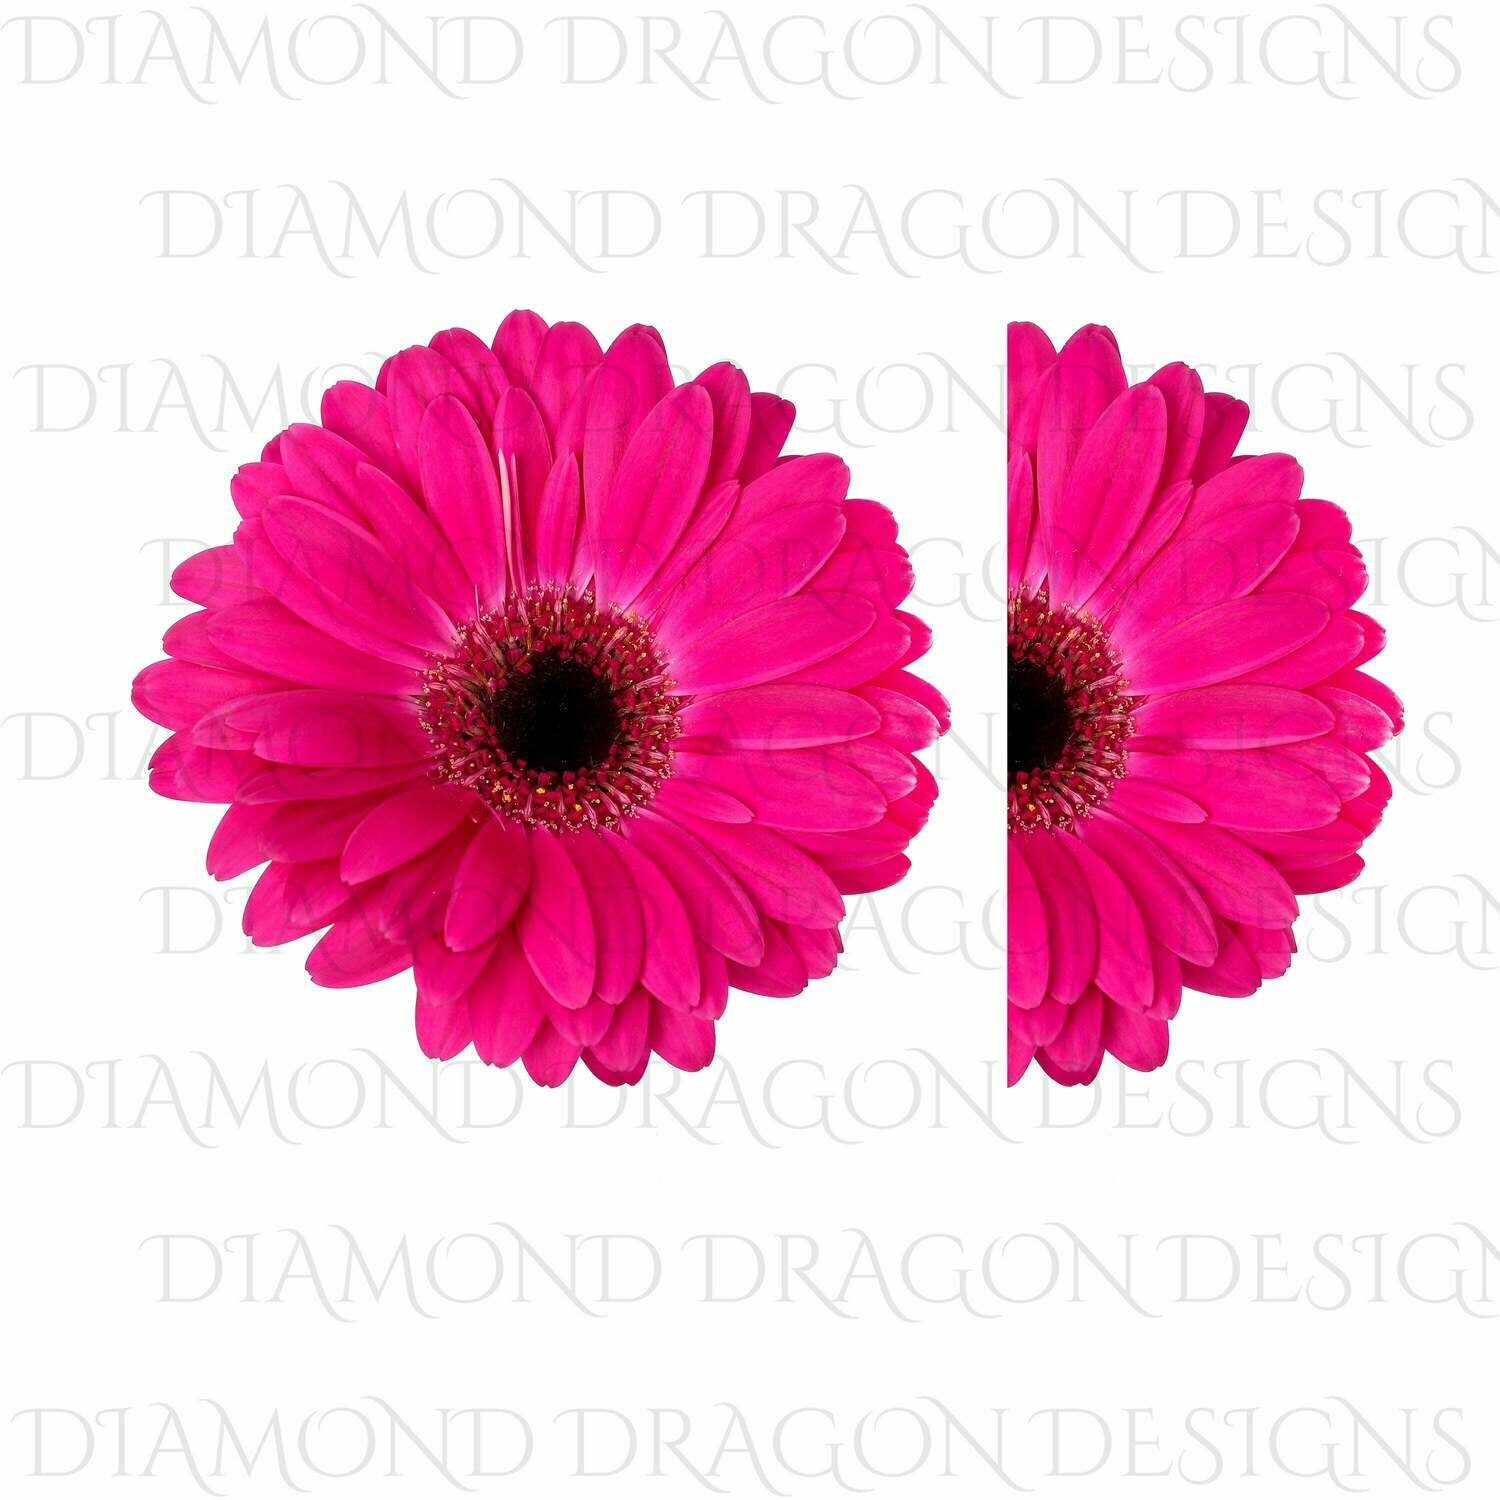 Flowers - Whole Daisy, Half Daisy, Pink Gerbera Daisy, Pink Gerbera Flower, Waterslide